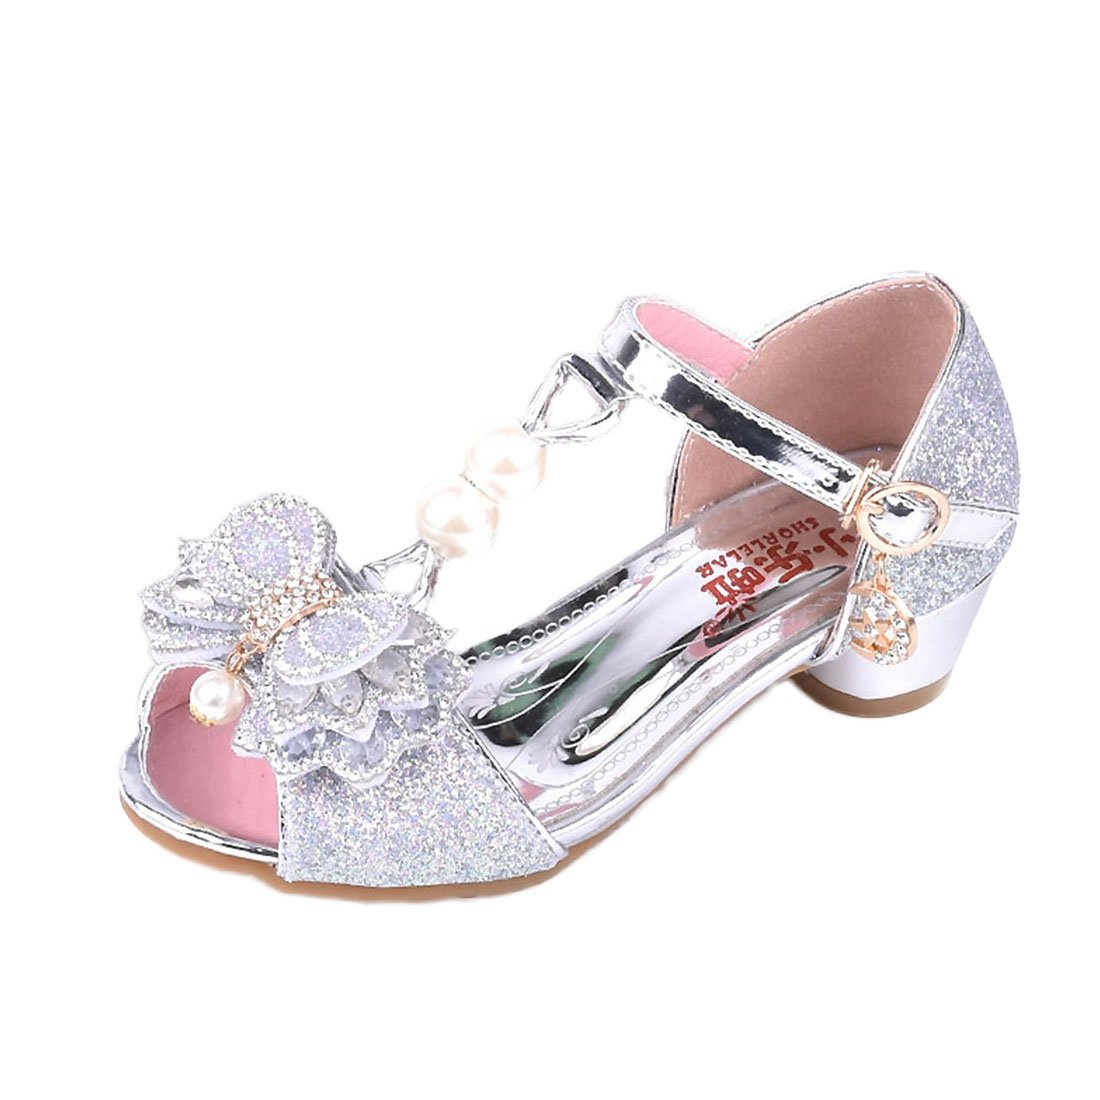 YIBLBOX Kids Little Girls Glitter Wedding Party Bridesmaid Dress Princess Shoes Mary Jane Low Heel Sandals